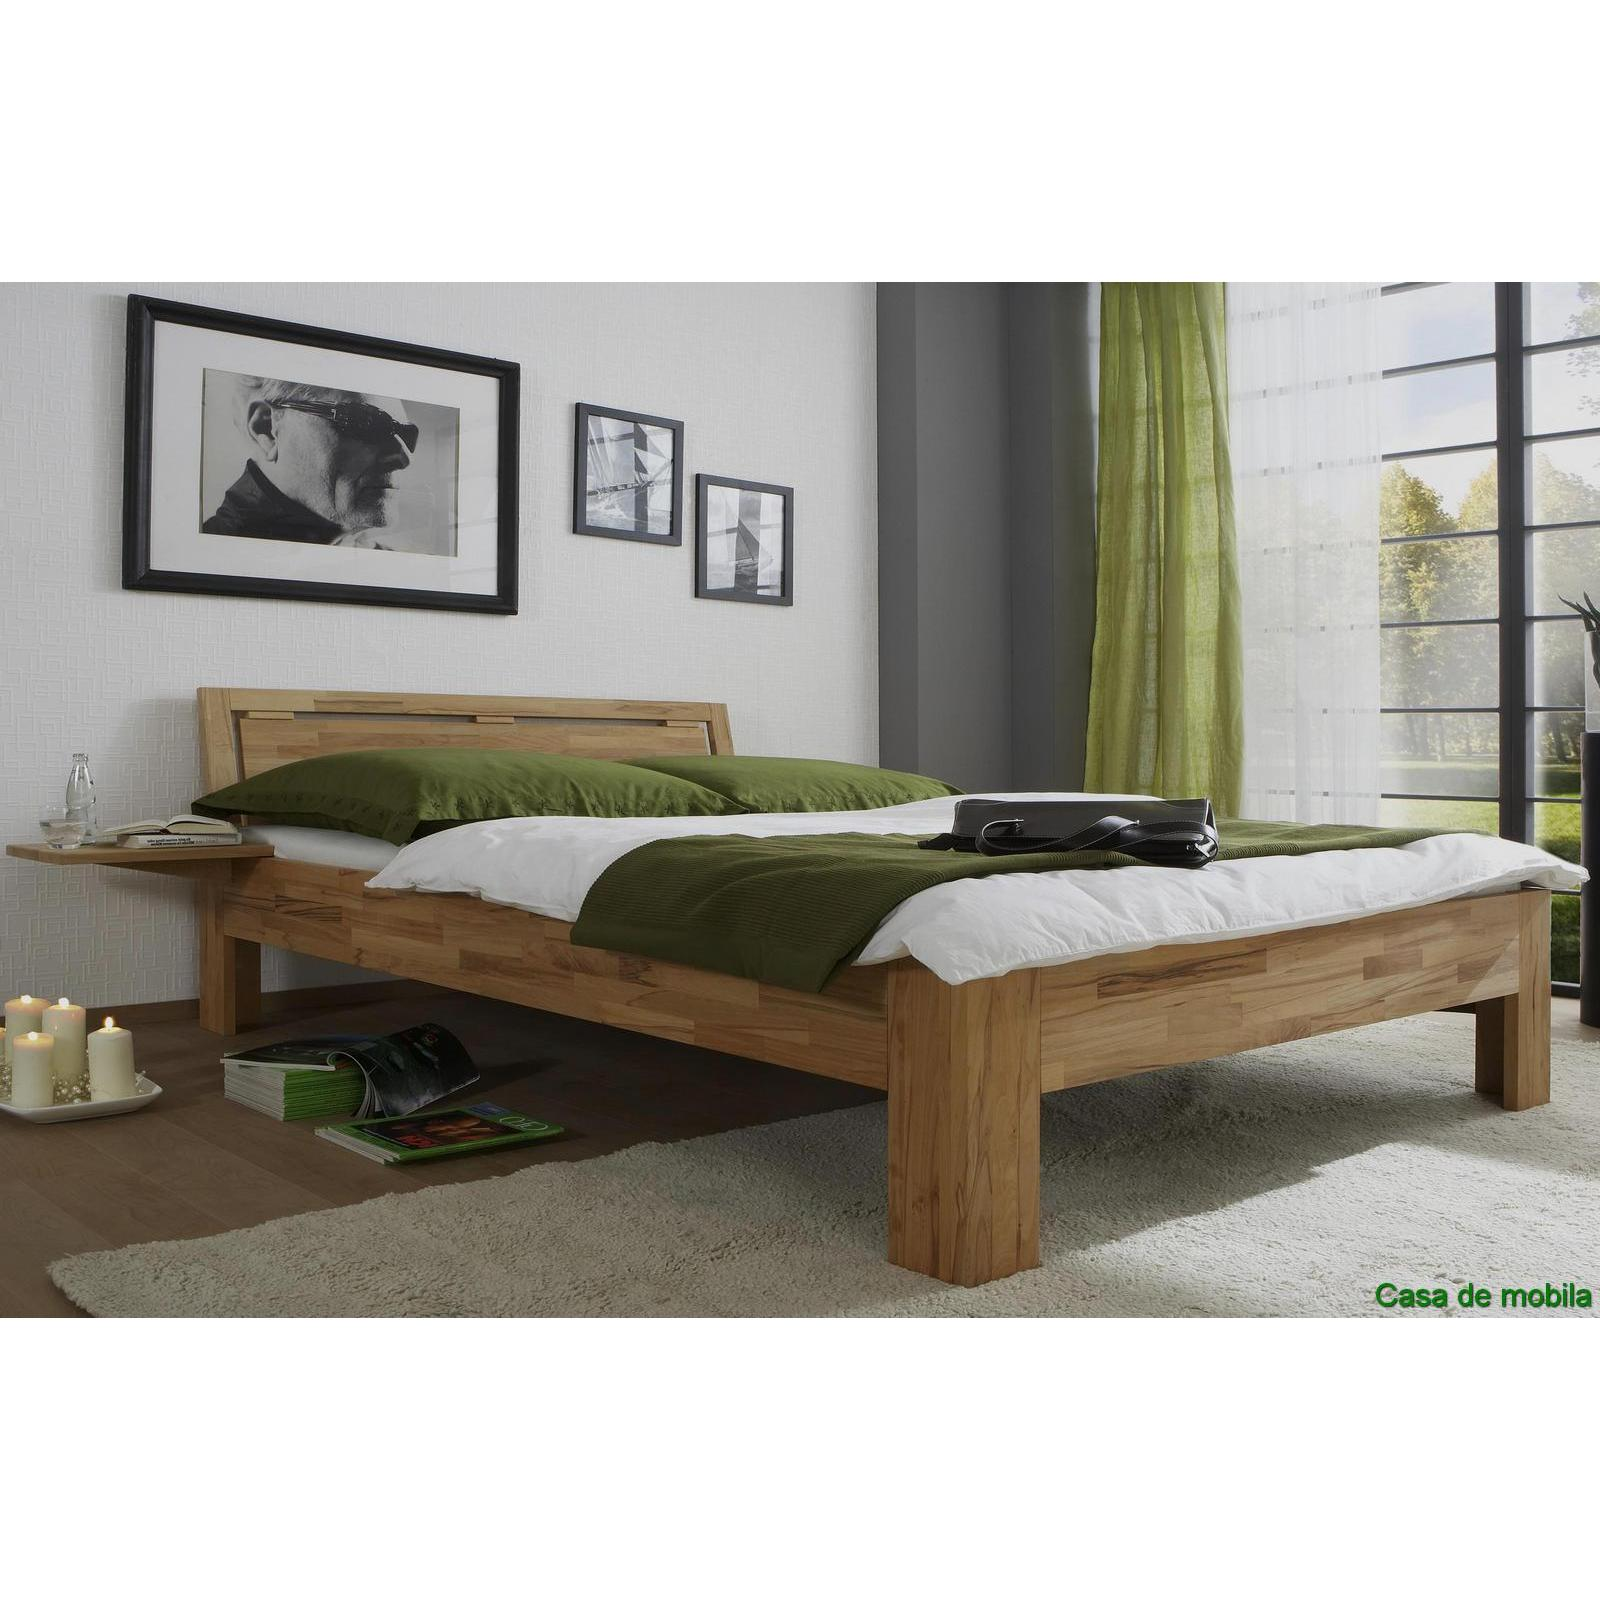 echtholz bett doppelbett 160x200 kernbuche massiv ge lt caro mit nachtkonsole. Black Bedroom Furniture Sets. Home Design Ideas